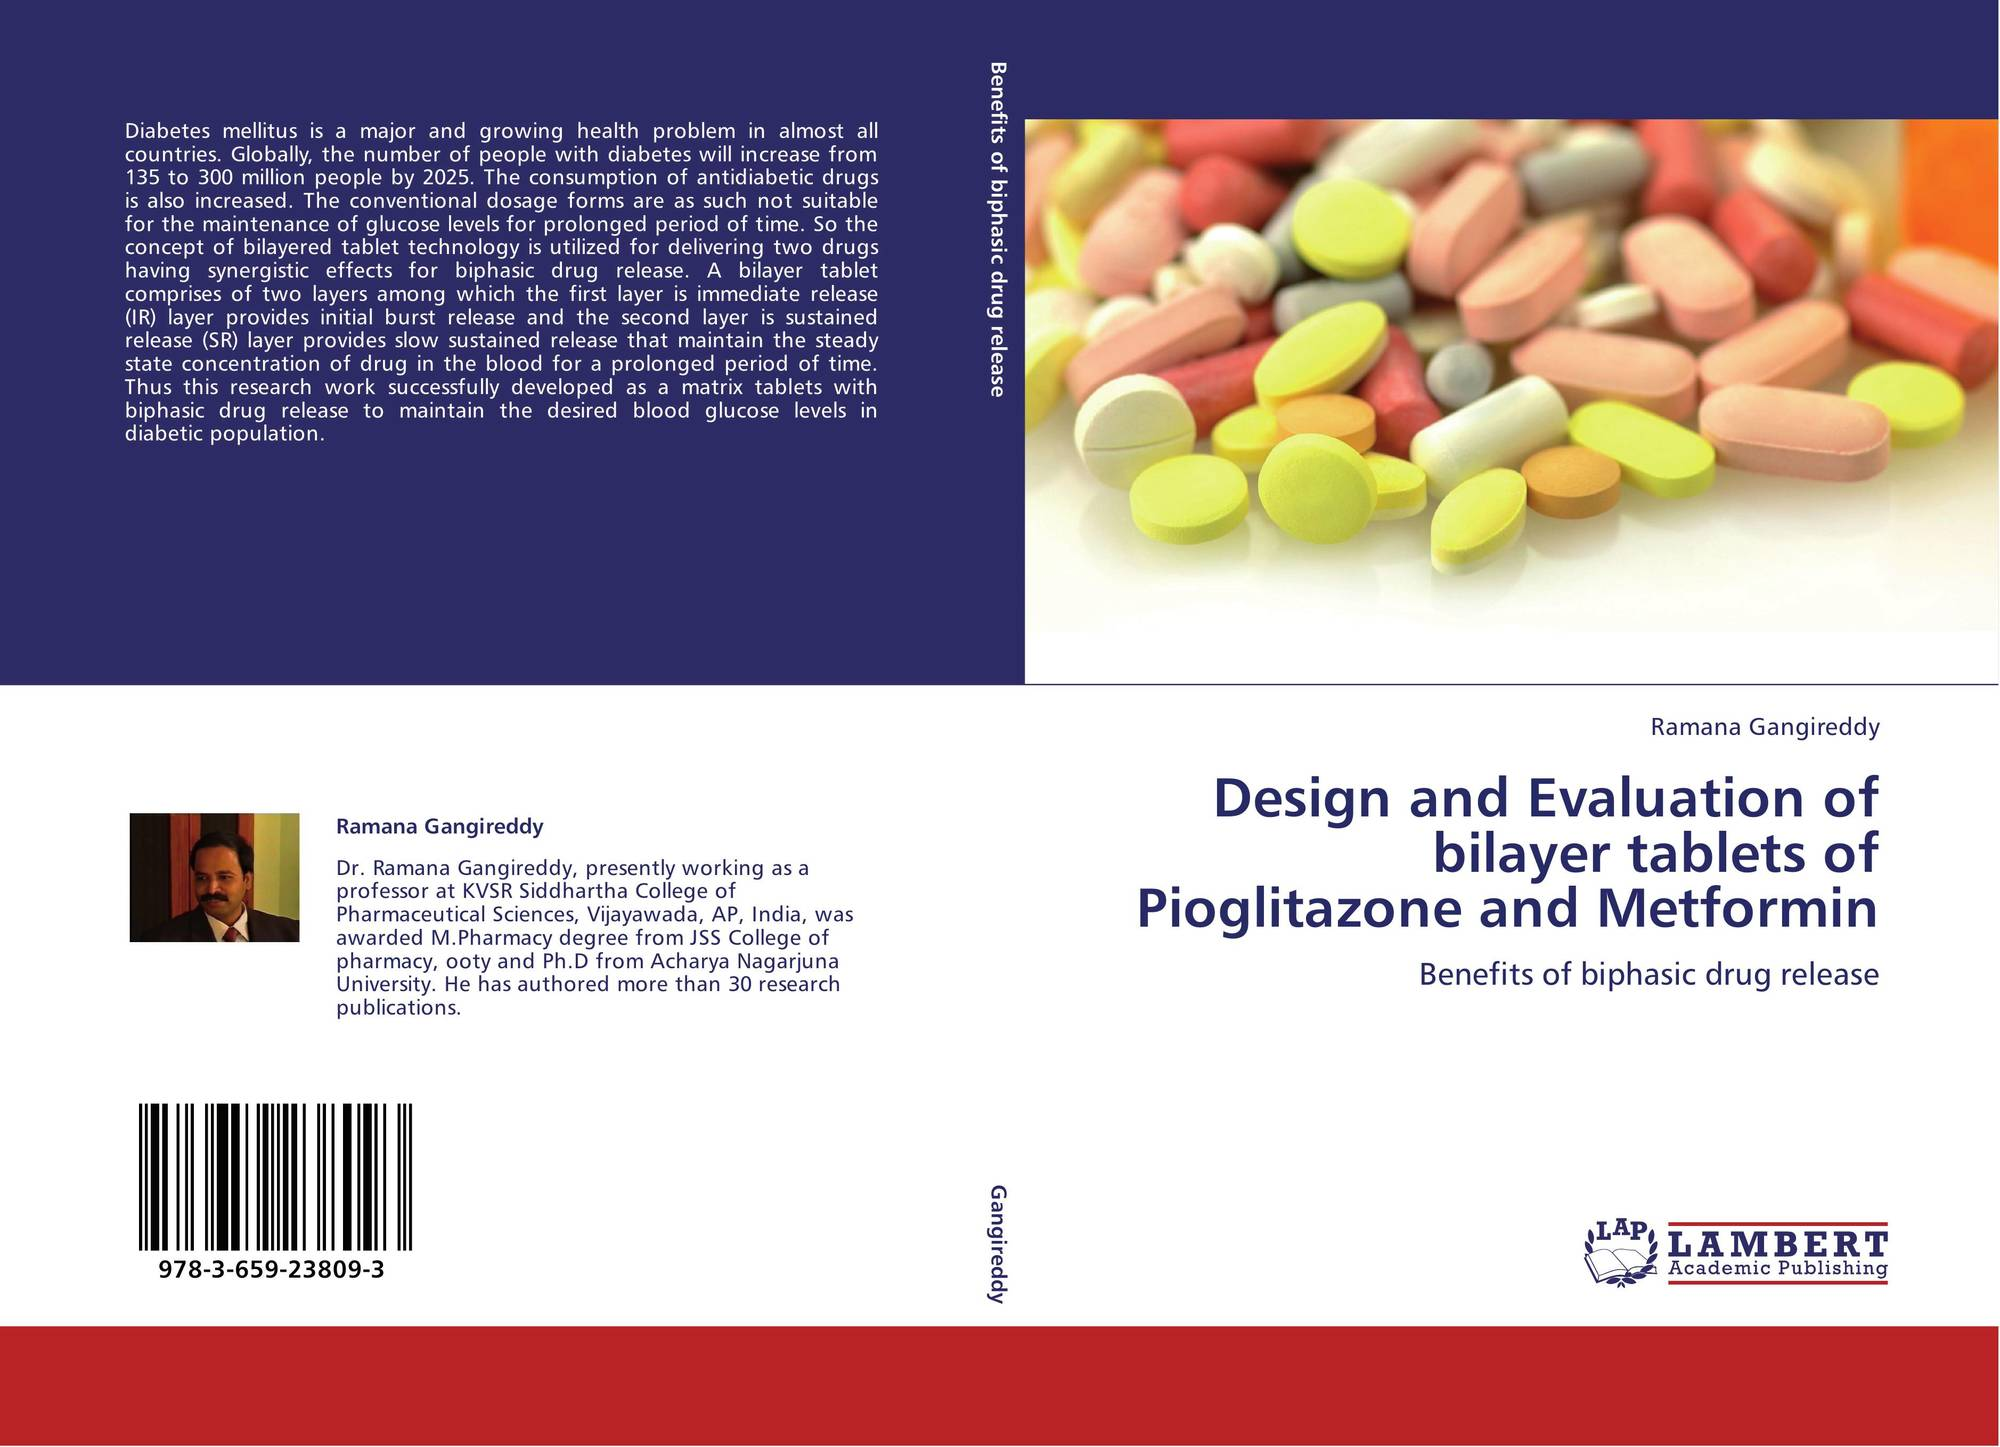 Design And Evaluation Of Bilayer Tablets Of Pioglitazone And